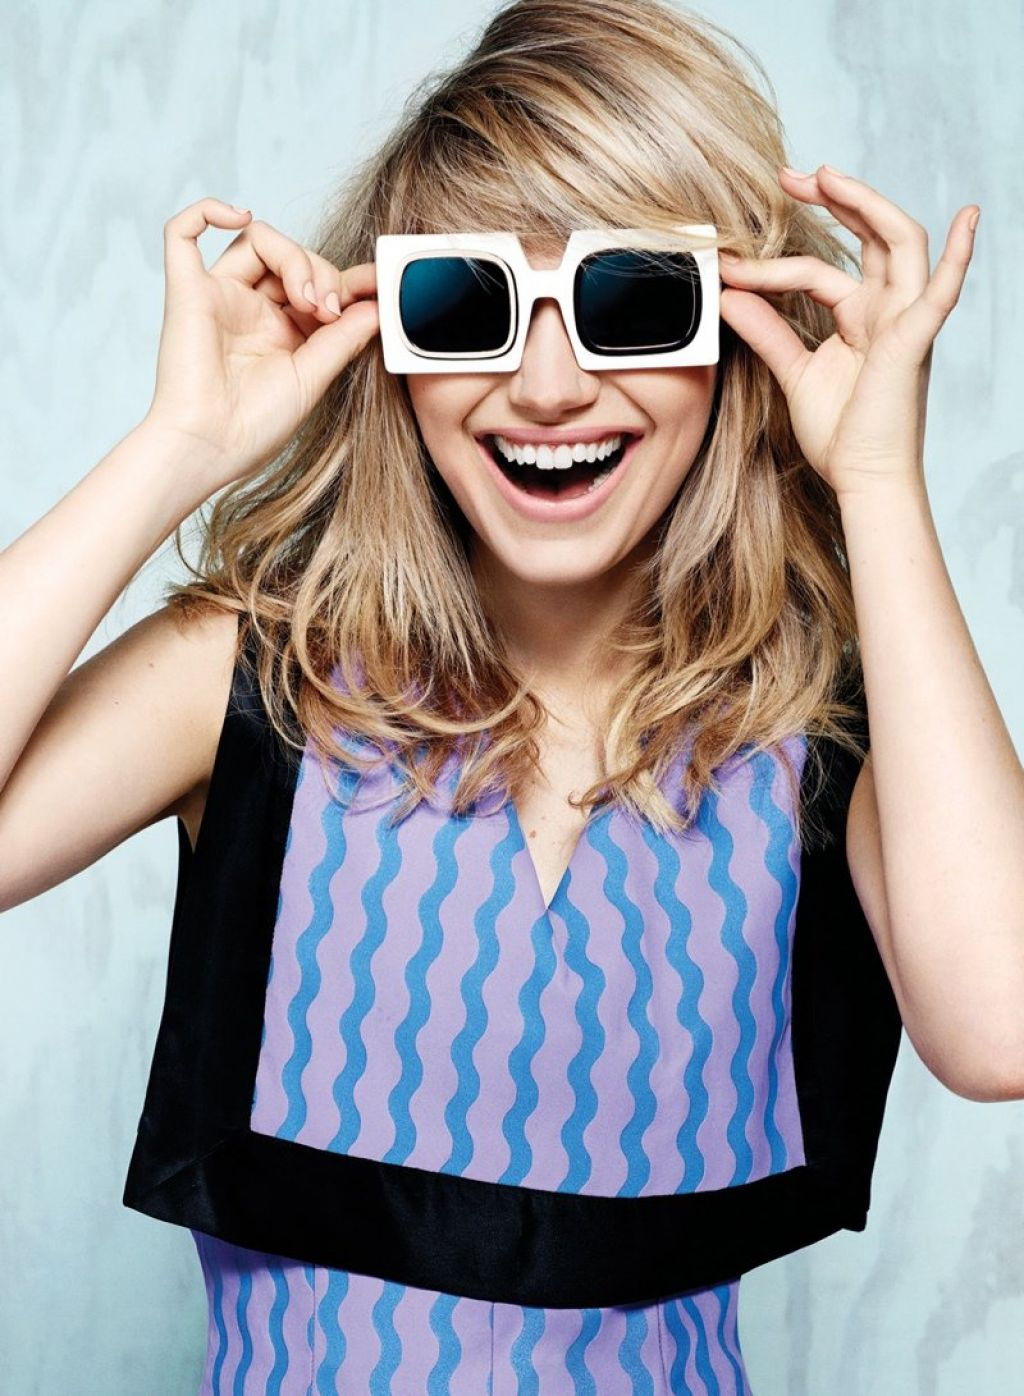 Imogen Poots - Jason Kim Photoshoot for Flare Magazine - March 2014 Issue